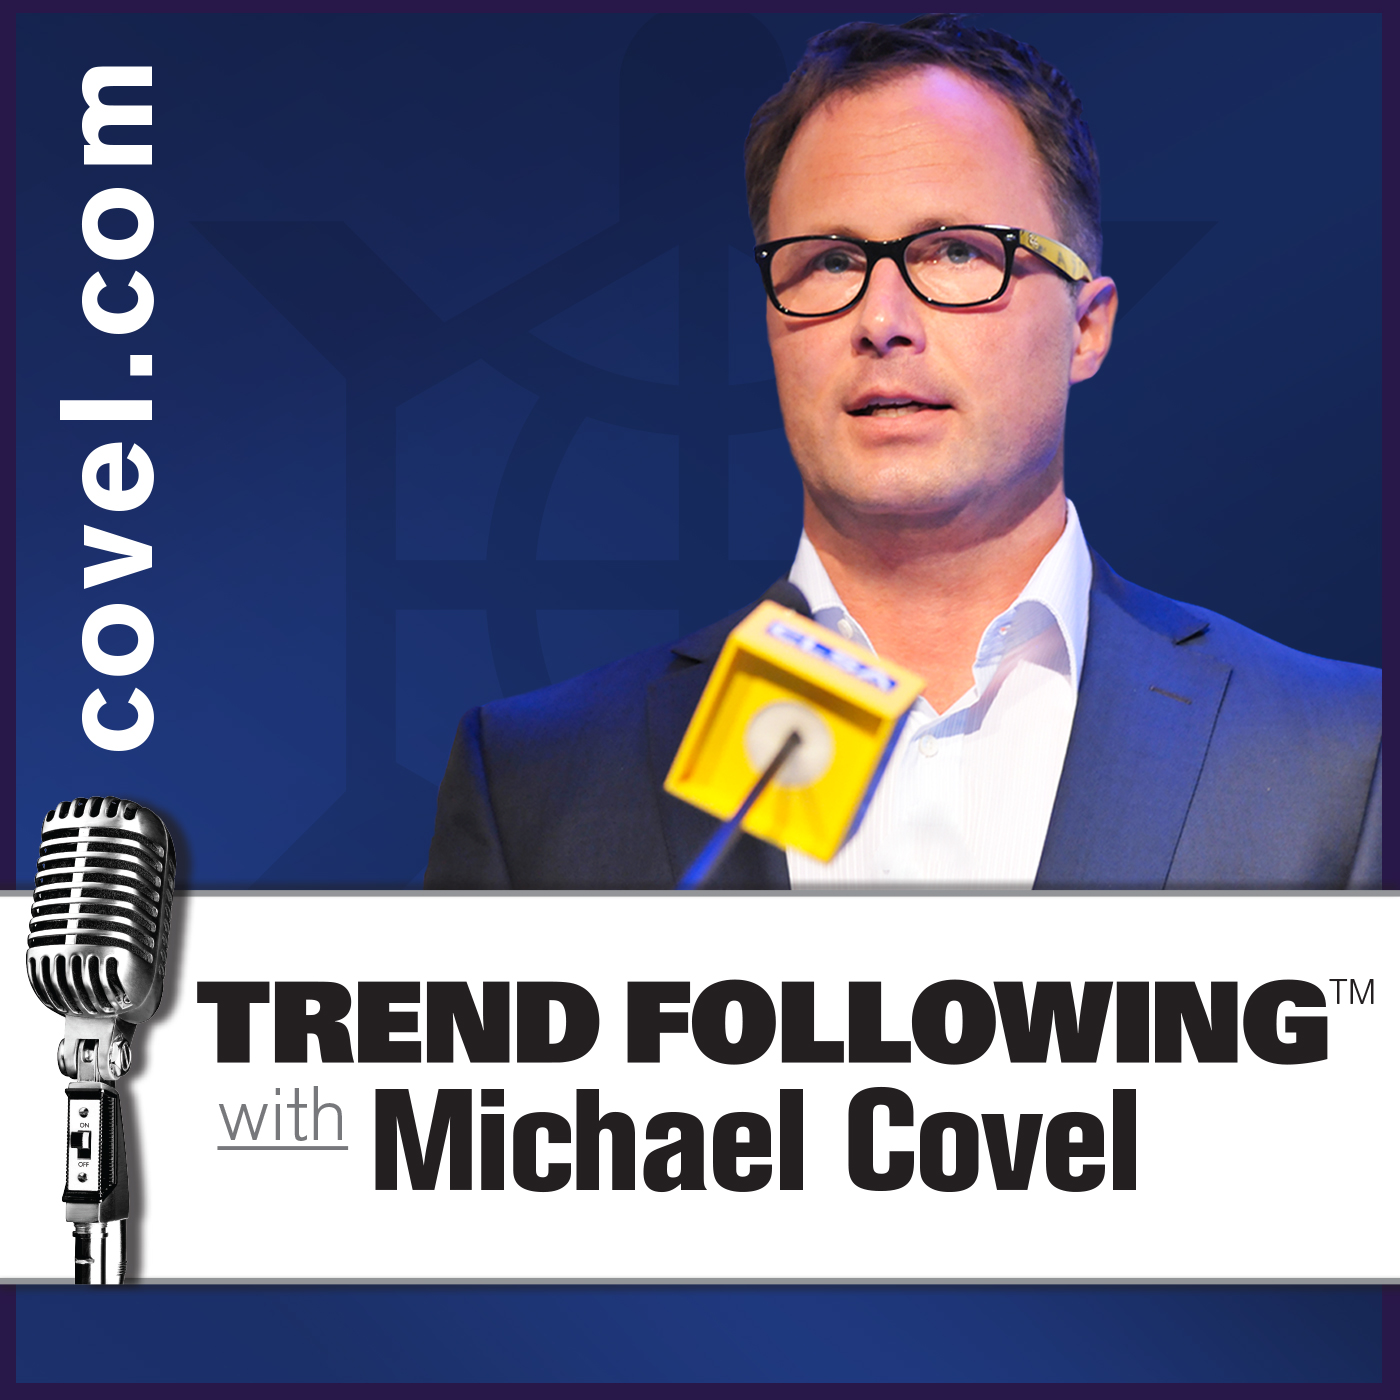 Ep. 483: Paul Tough Interview with Michael Covel on Trend Following Radio